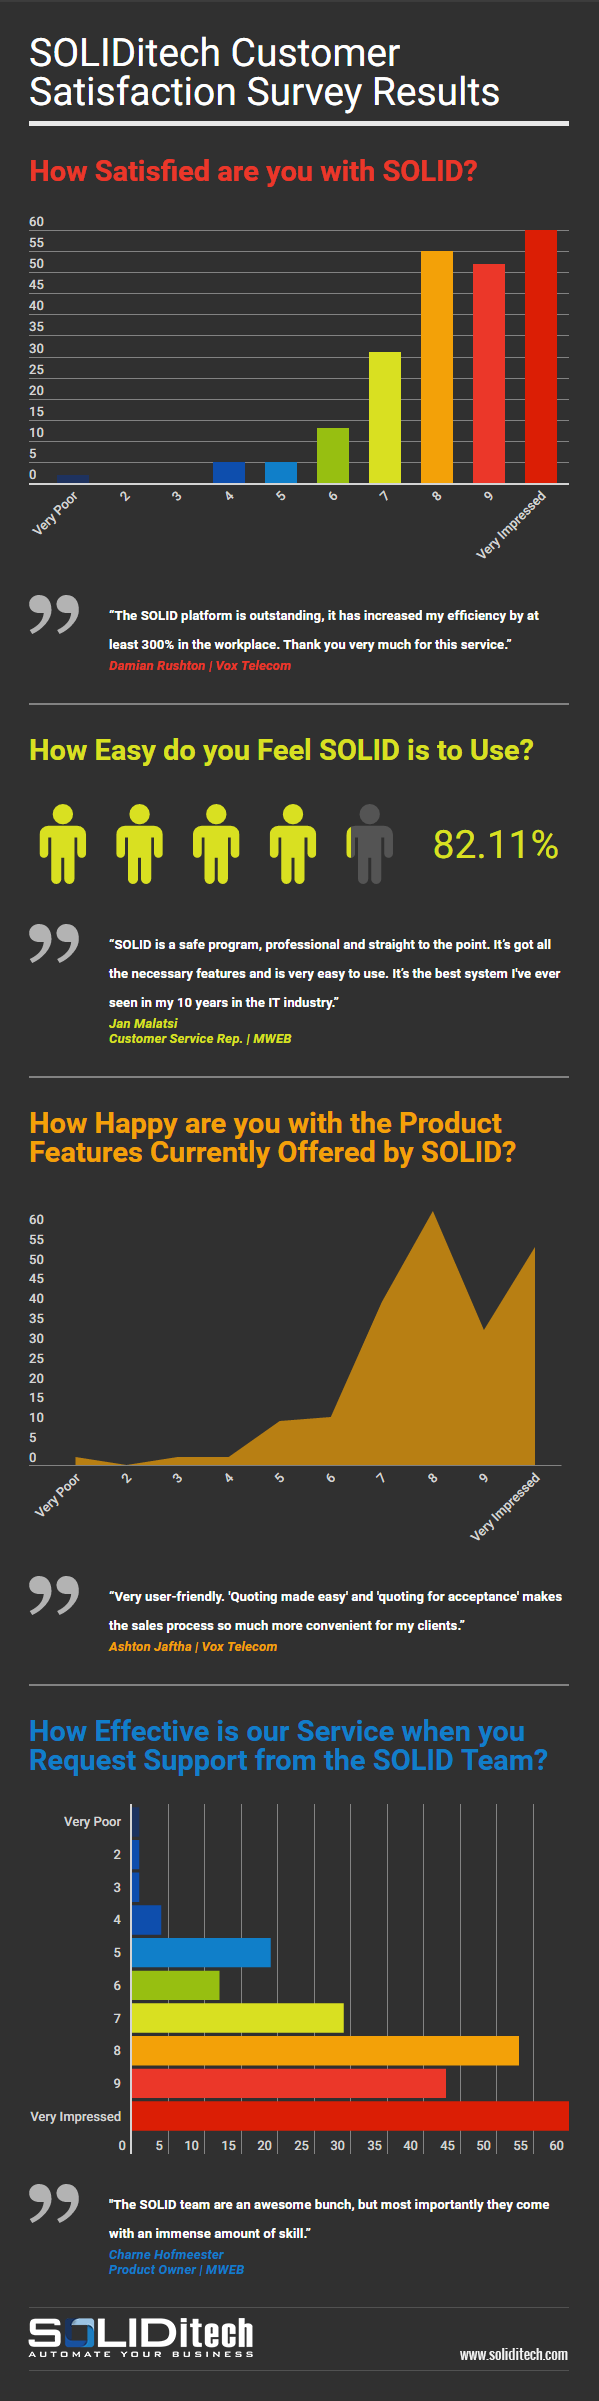 SOLIDitech Receives 5-Star Customer Satisfaction Ratings